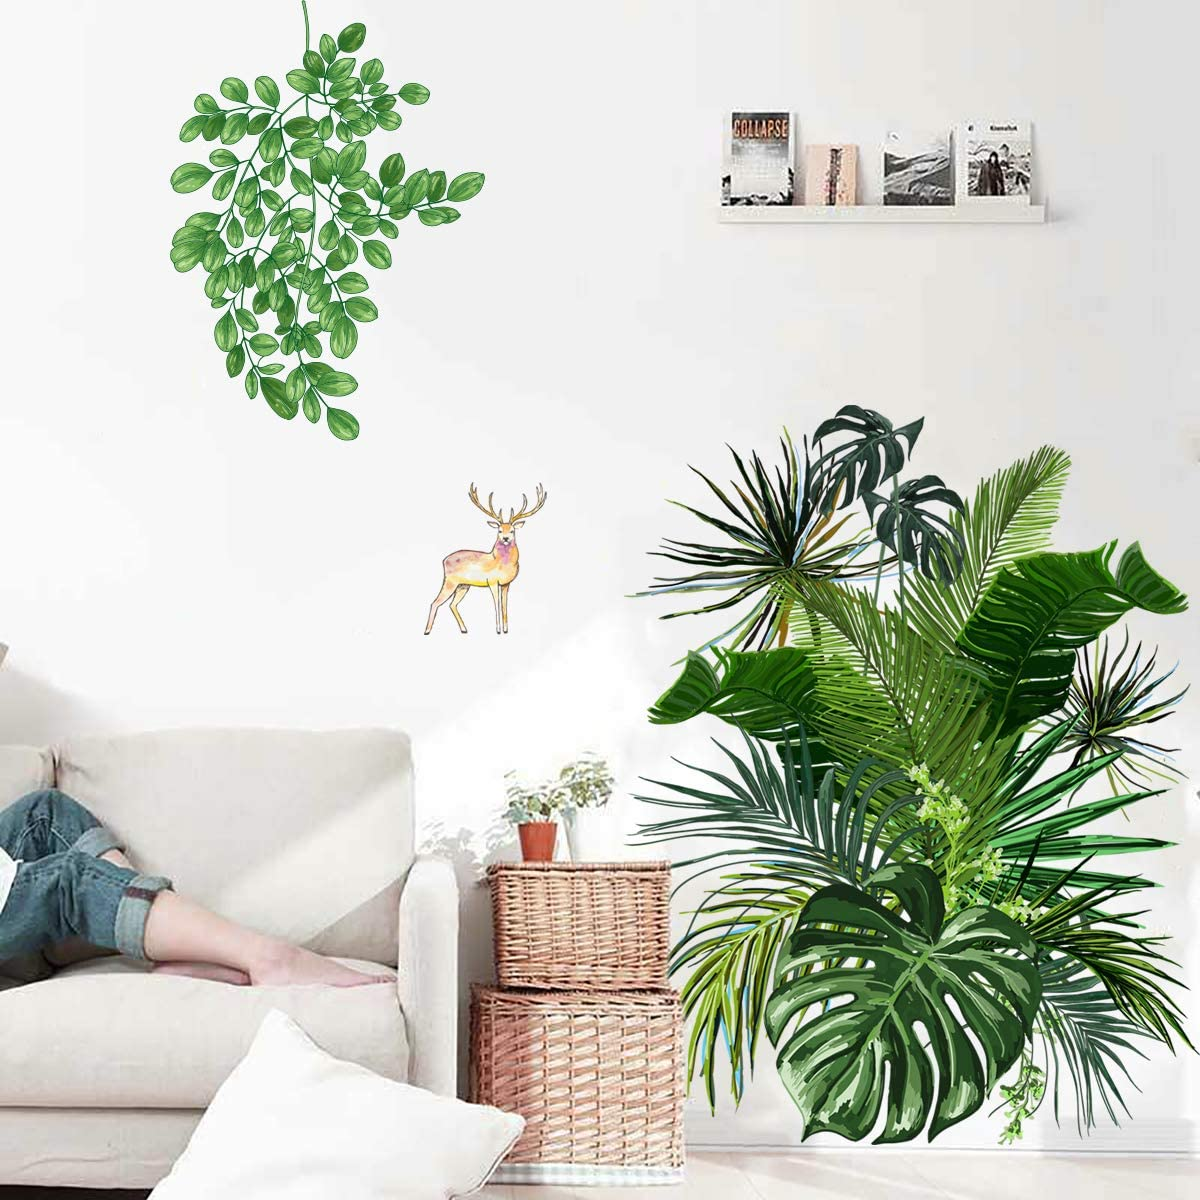 Green Plants Fawn Wall Sticker,Evergreen Giant Wall Decals Ivy Monstera Palm Tree Murals for Office Living Room Bedroom Decoration